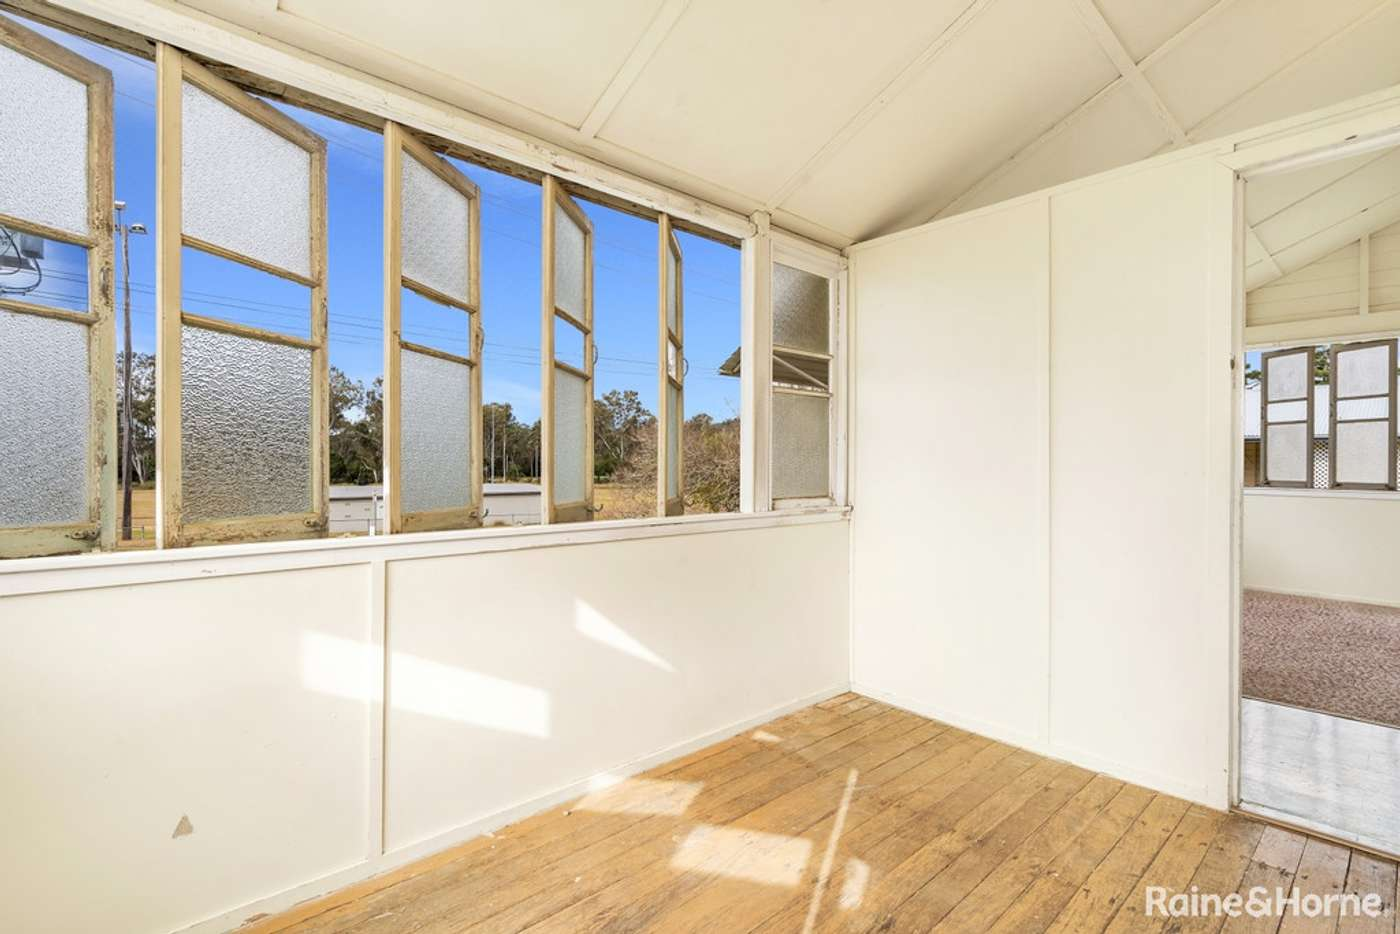 Seventh view of Homely house listing, 43 SEIB STREET, Kilcoy QLD 4515